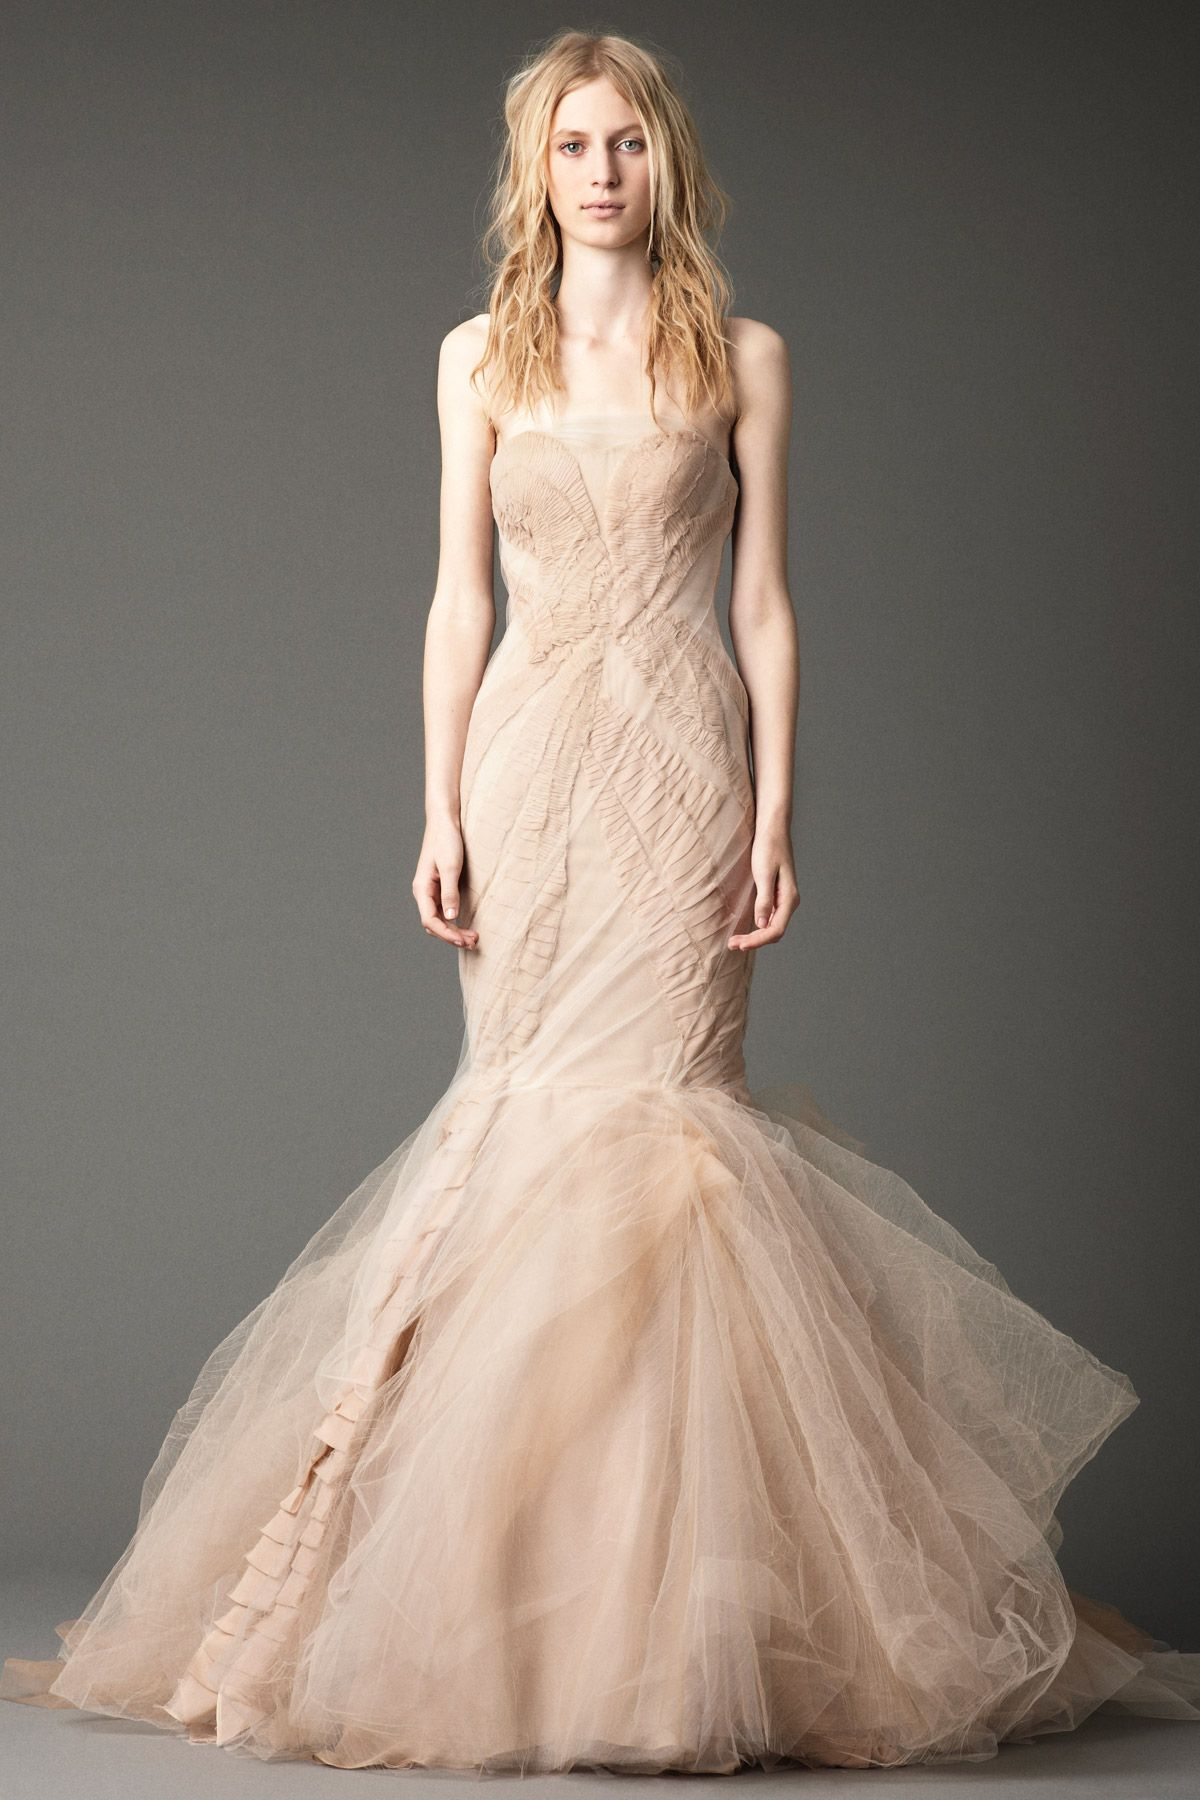 Vera Wang Fall 2012 Wedding Collection - Strapless mermaid gown with chiffon laddering and tumbled skirt.